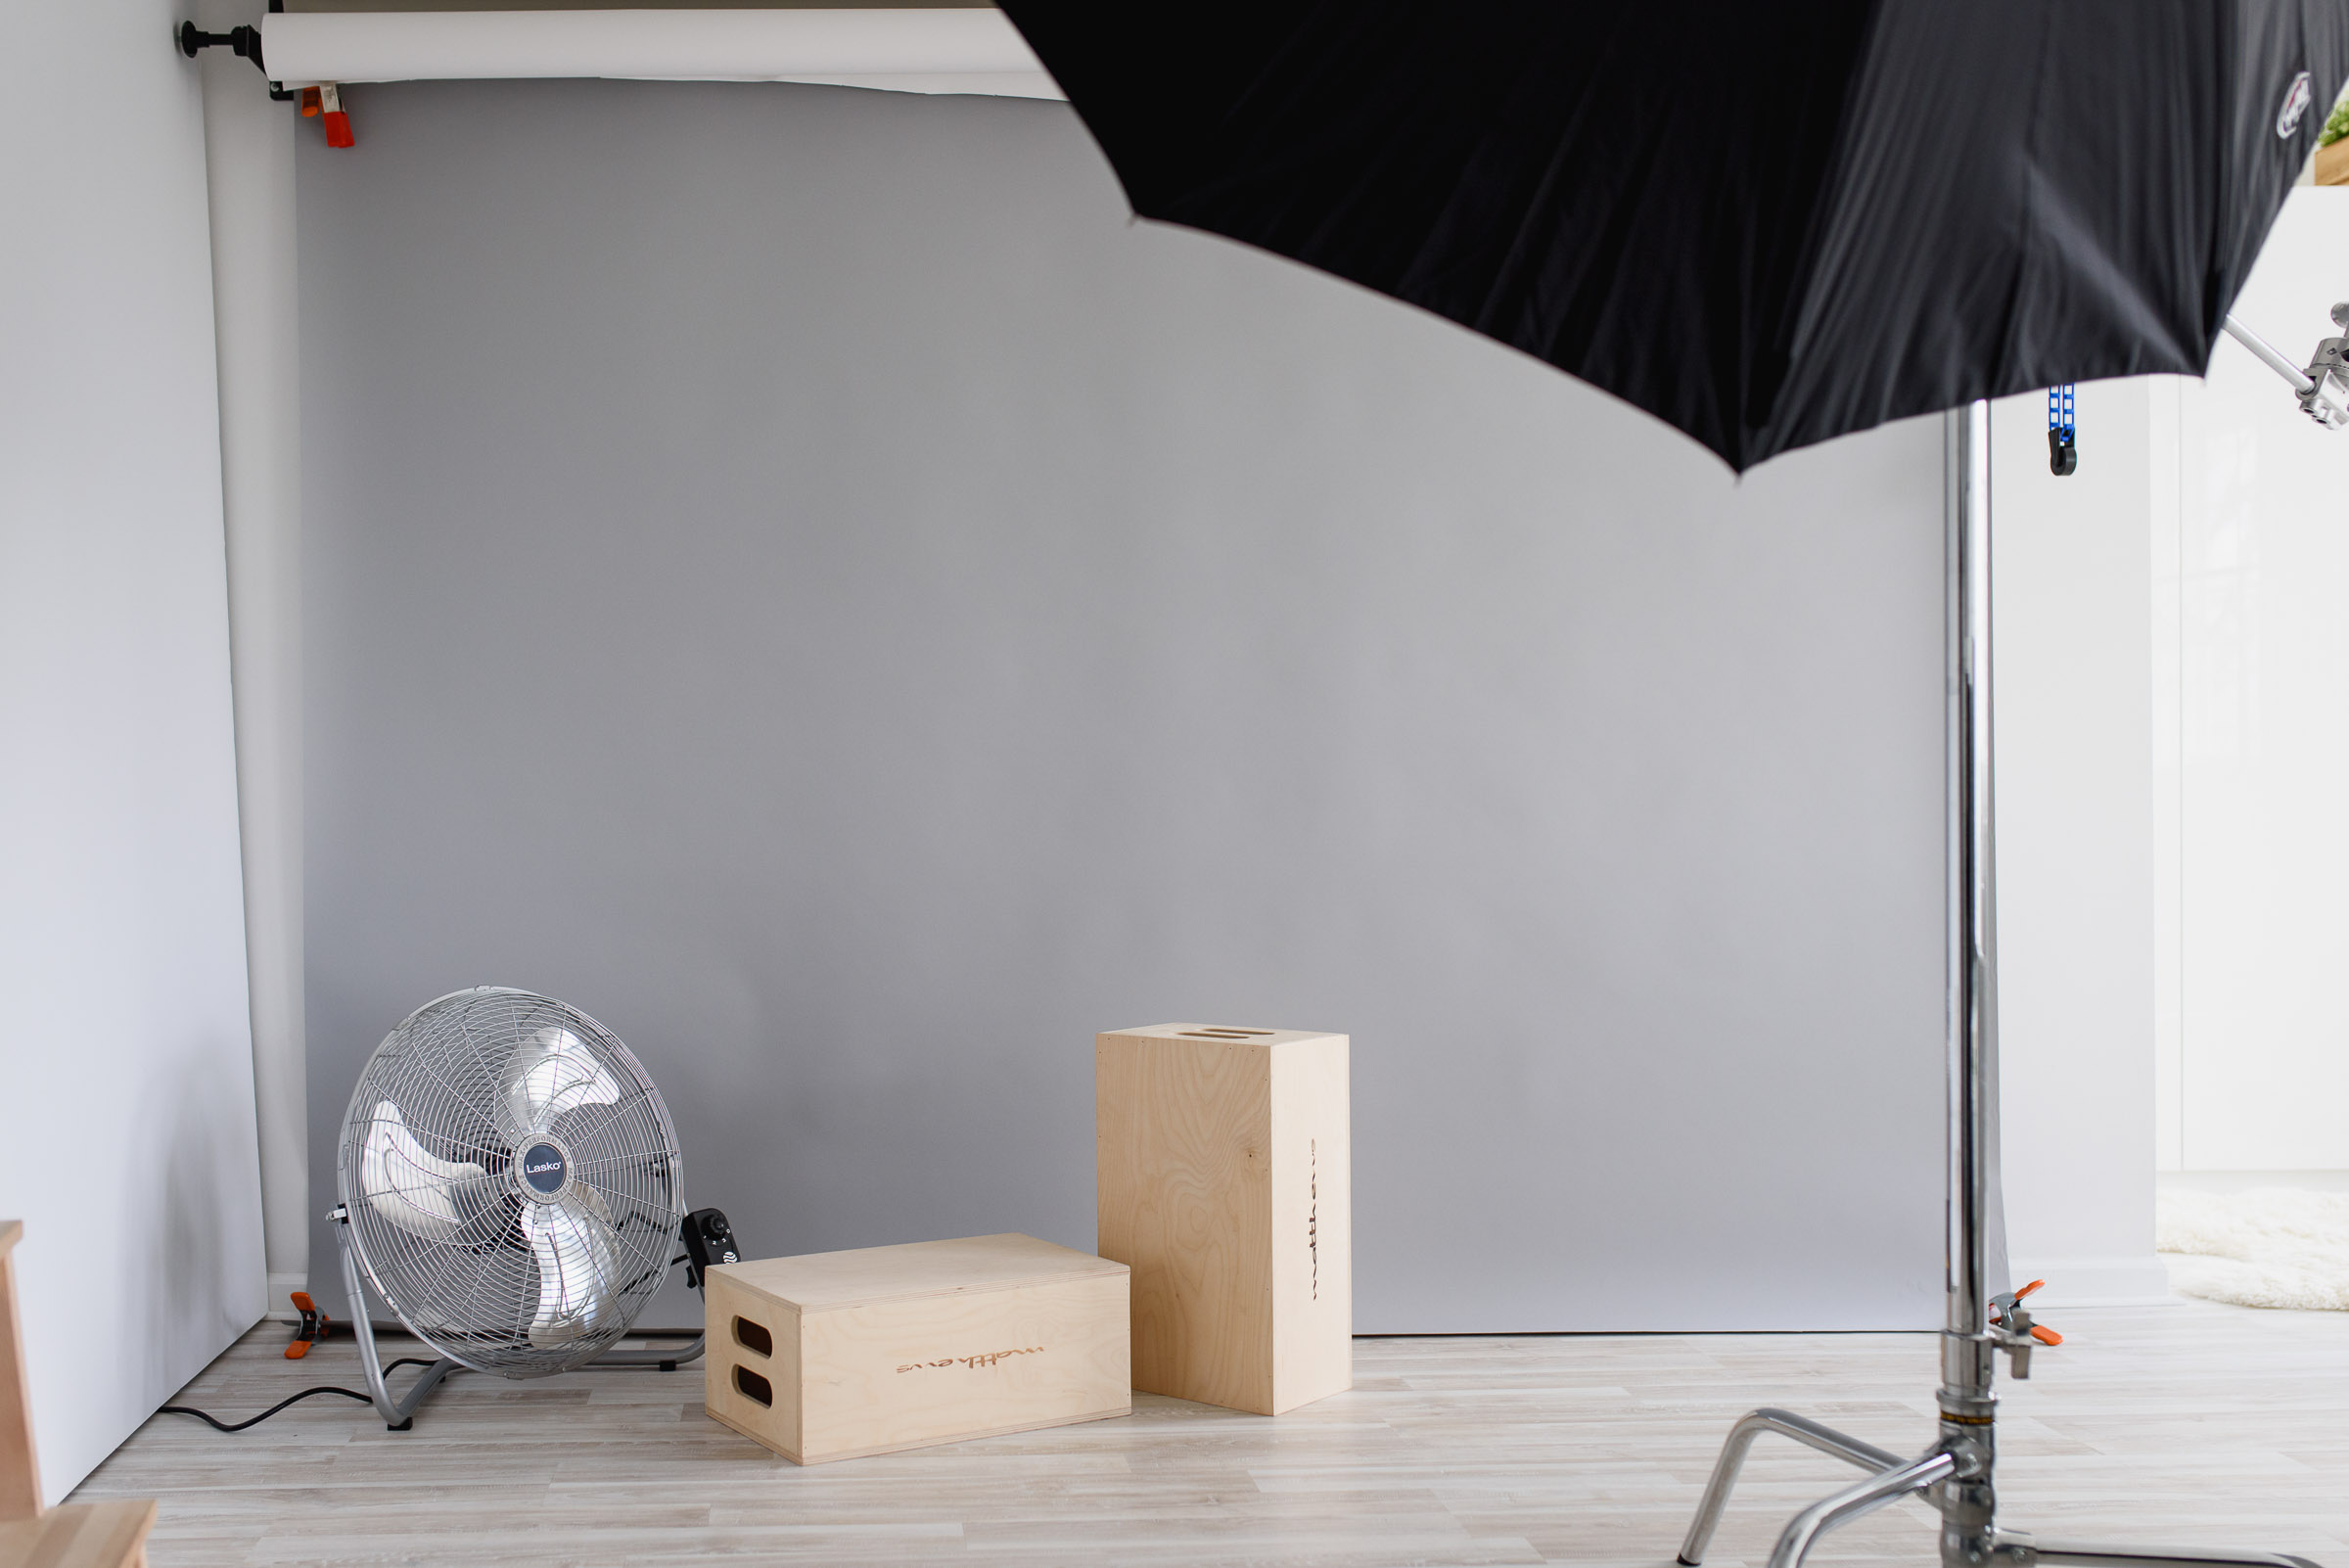 Image of fan and backdrop scene. Photography by N. Lalor Photography. Studio in Greenwich, Connecticut.